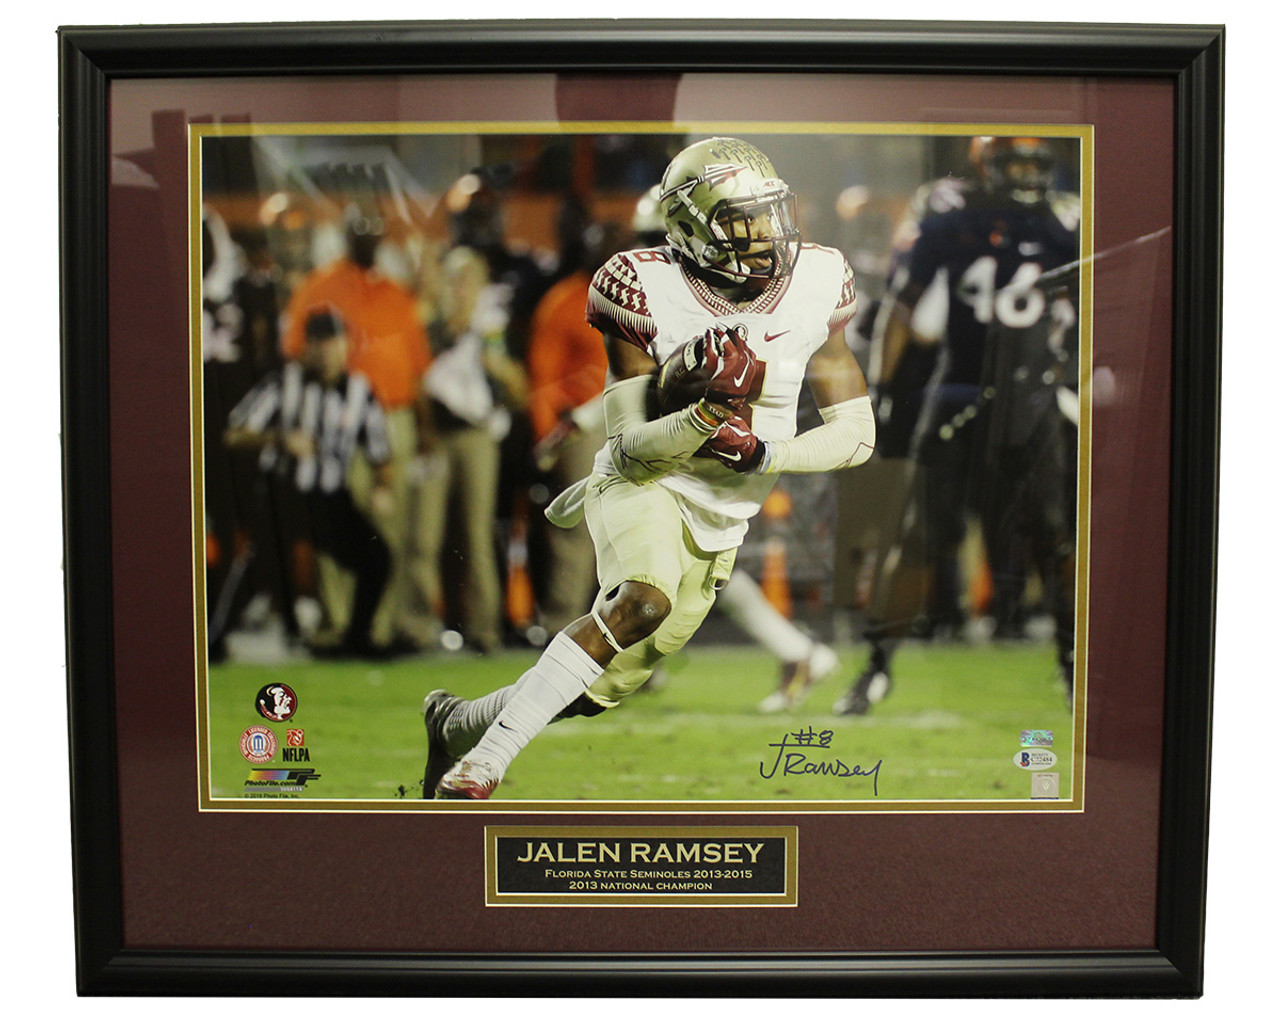 finest selection 99e9e 840d4 Jalen Ramsey Autographed Signed 16x20 Framed Photo (White Jersey) w/  Nameplate - Beckett Certified Authentic